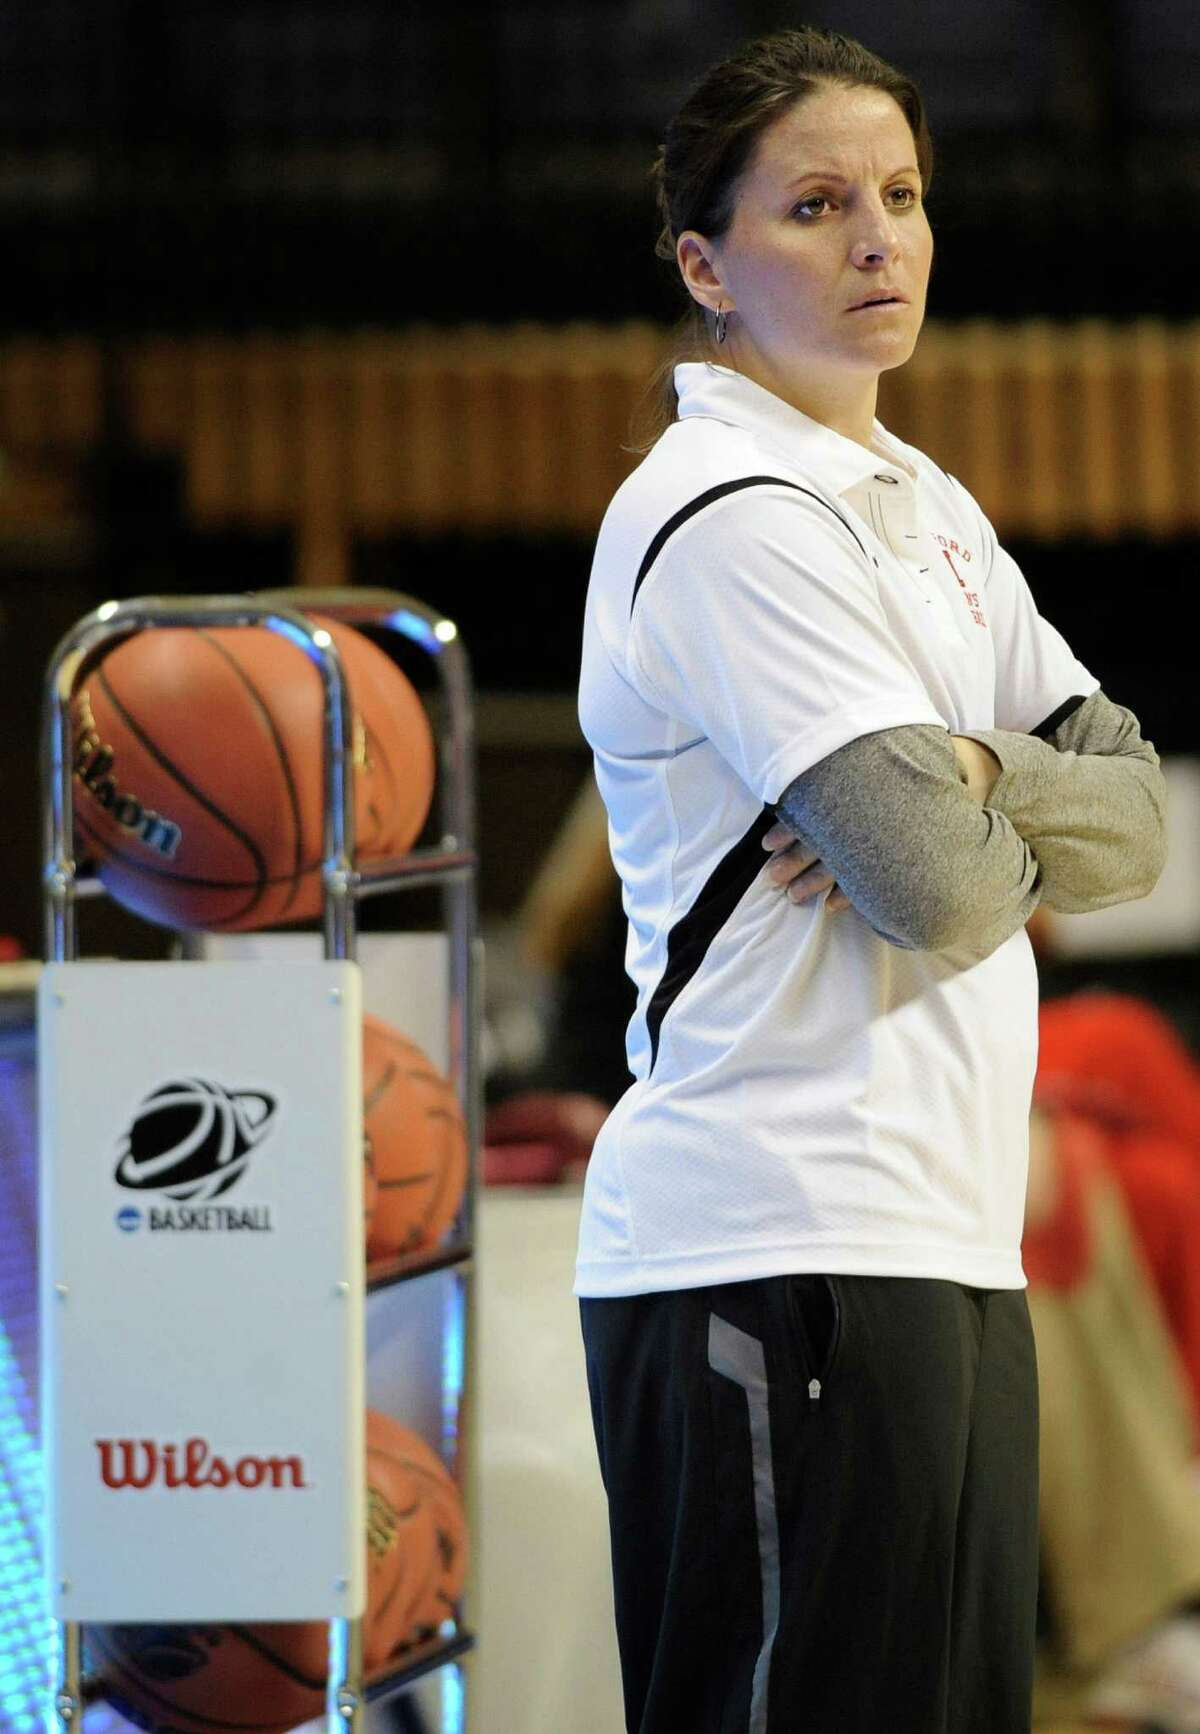 Hartford head coach Jennifer Rizzotti watches her team practice in the first round of the NCAA women's college basketball tournament Storrs, Conn., Saturday, March 19, 2011. Hartford plays Connecticut on Sunday. (AP Photo/Jessica Hill)